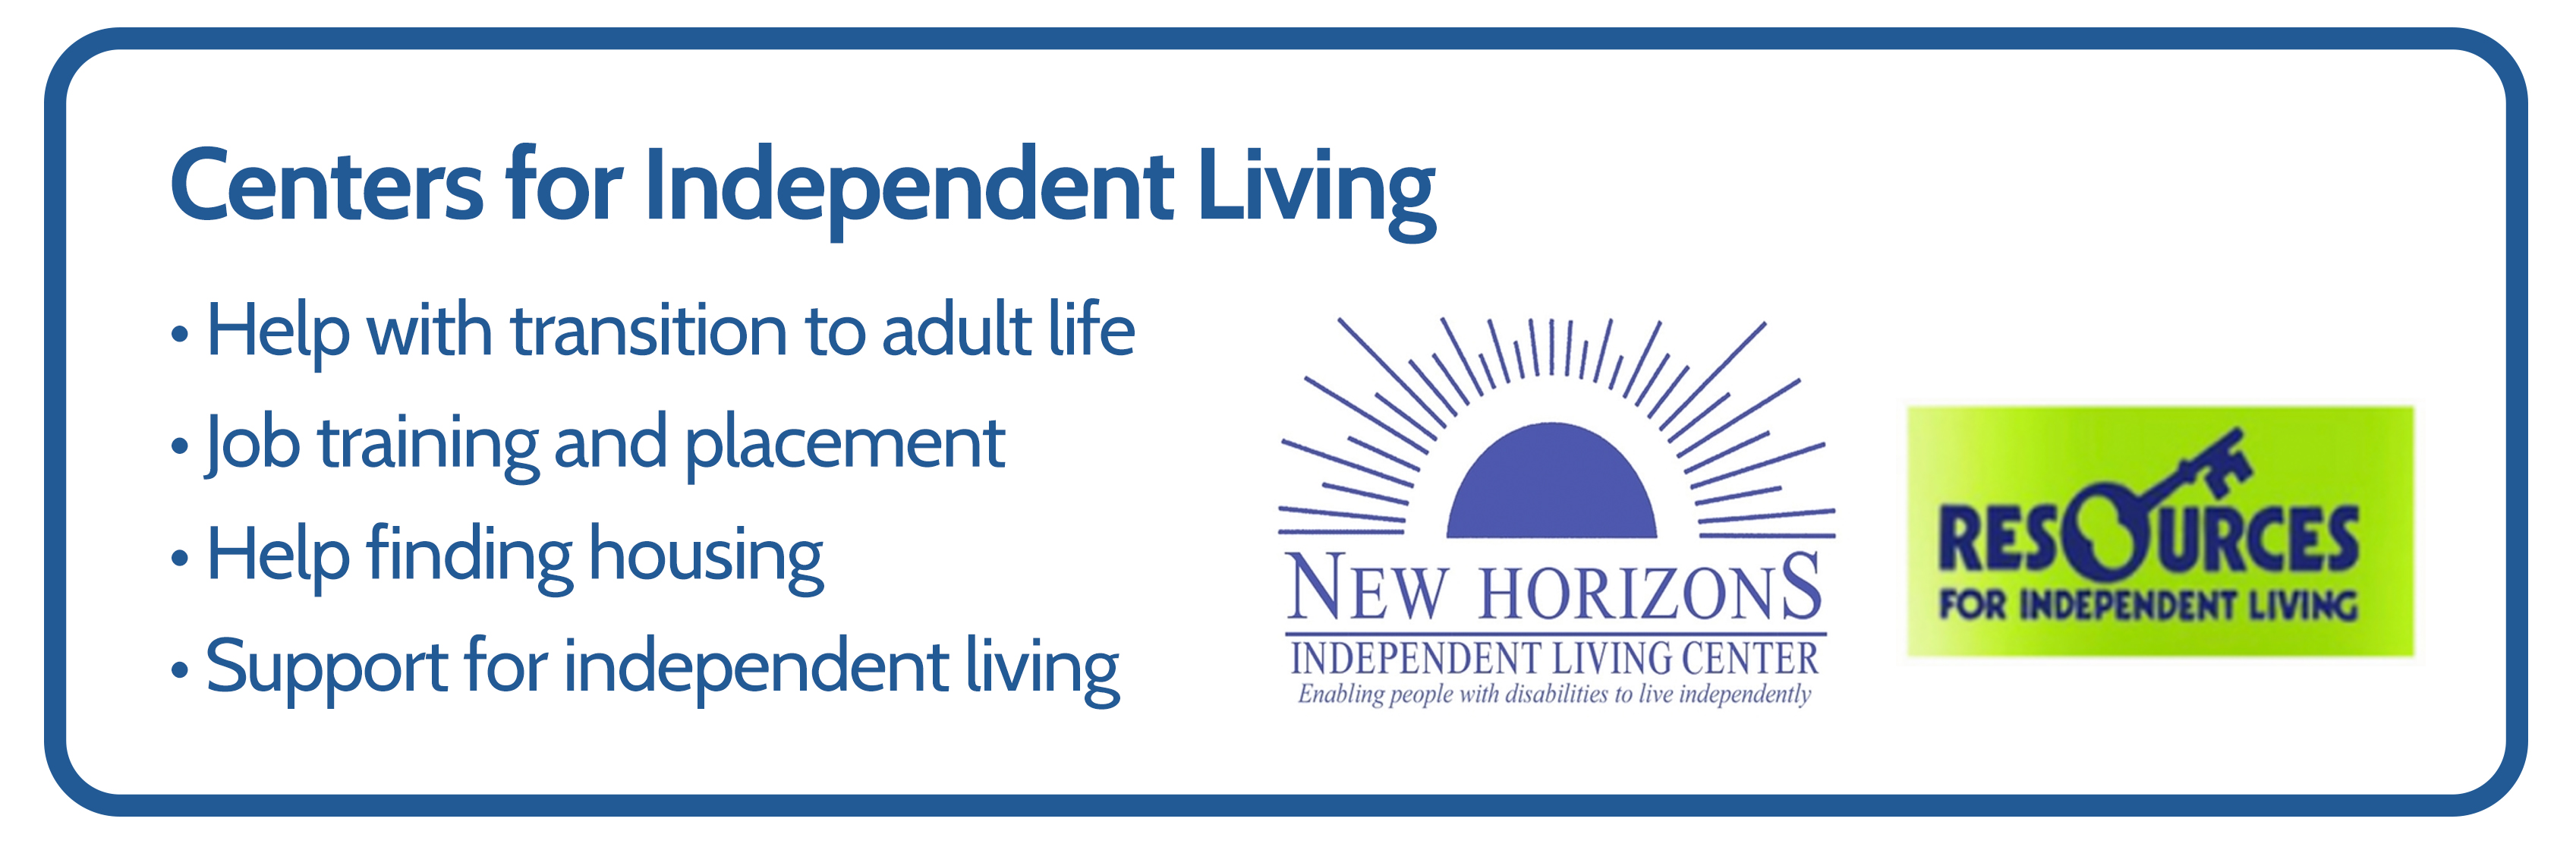 Centers for Independent Living can provide the following: 1. Help with transition to adult life 2. Job training and placement. 3. Help finding housing. 4. Support for independent living.